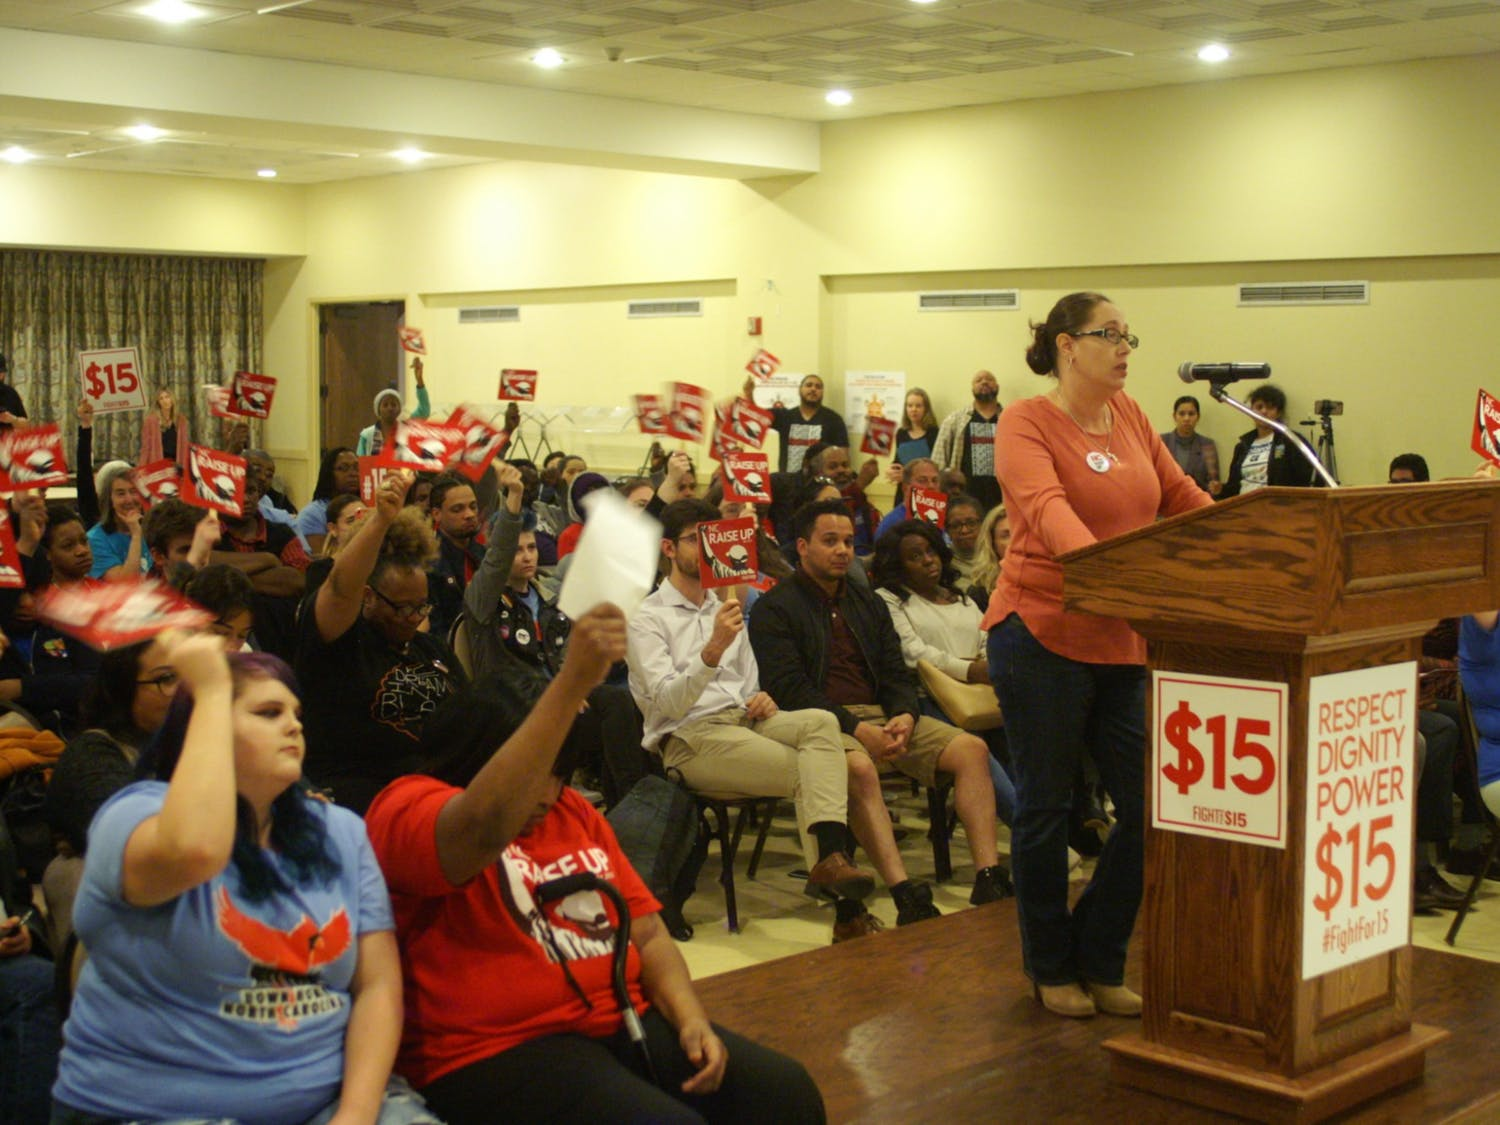 Sara Fearrington, a 43-year-old Waffle House server and mother of three, speaks to 2020 candidates in Raleigh on Feb. 13, 2020. Photo courtesy of NC Raise Up.